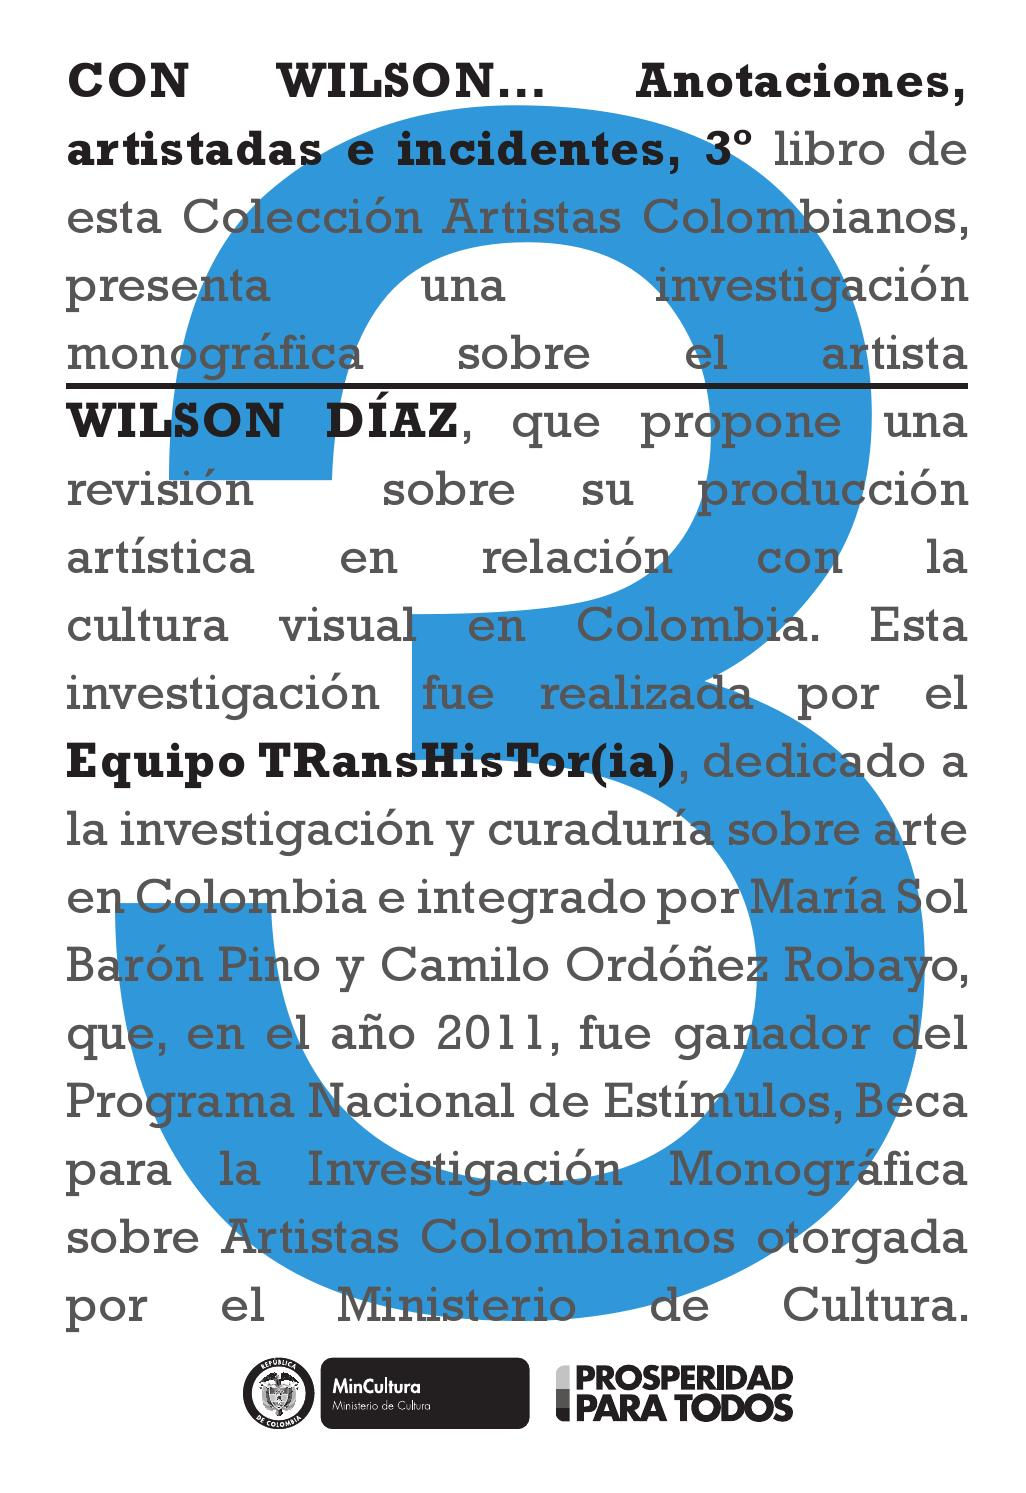 Con Wilson by Artes Visuales Mincultura - issuu